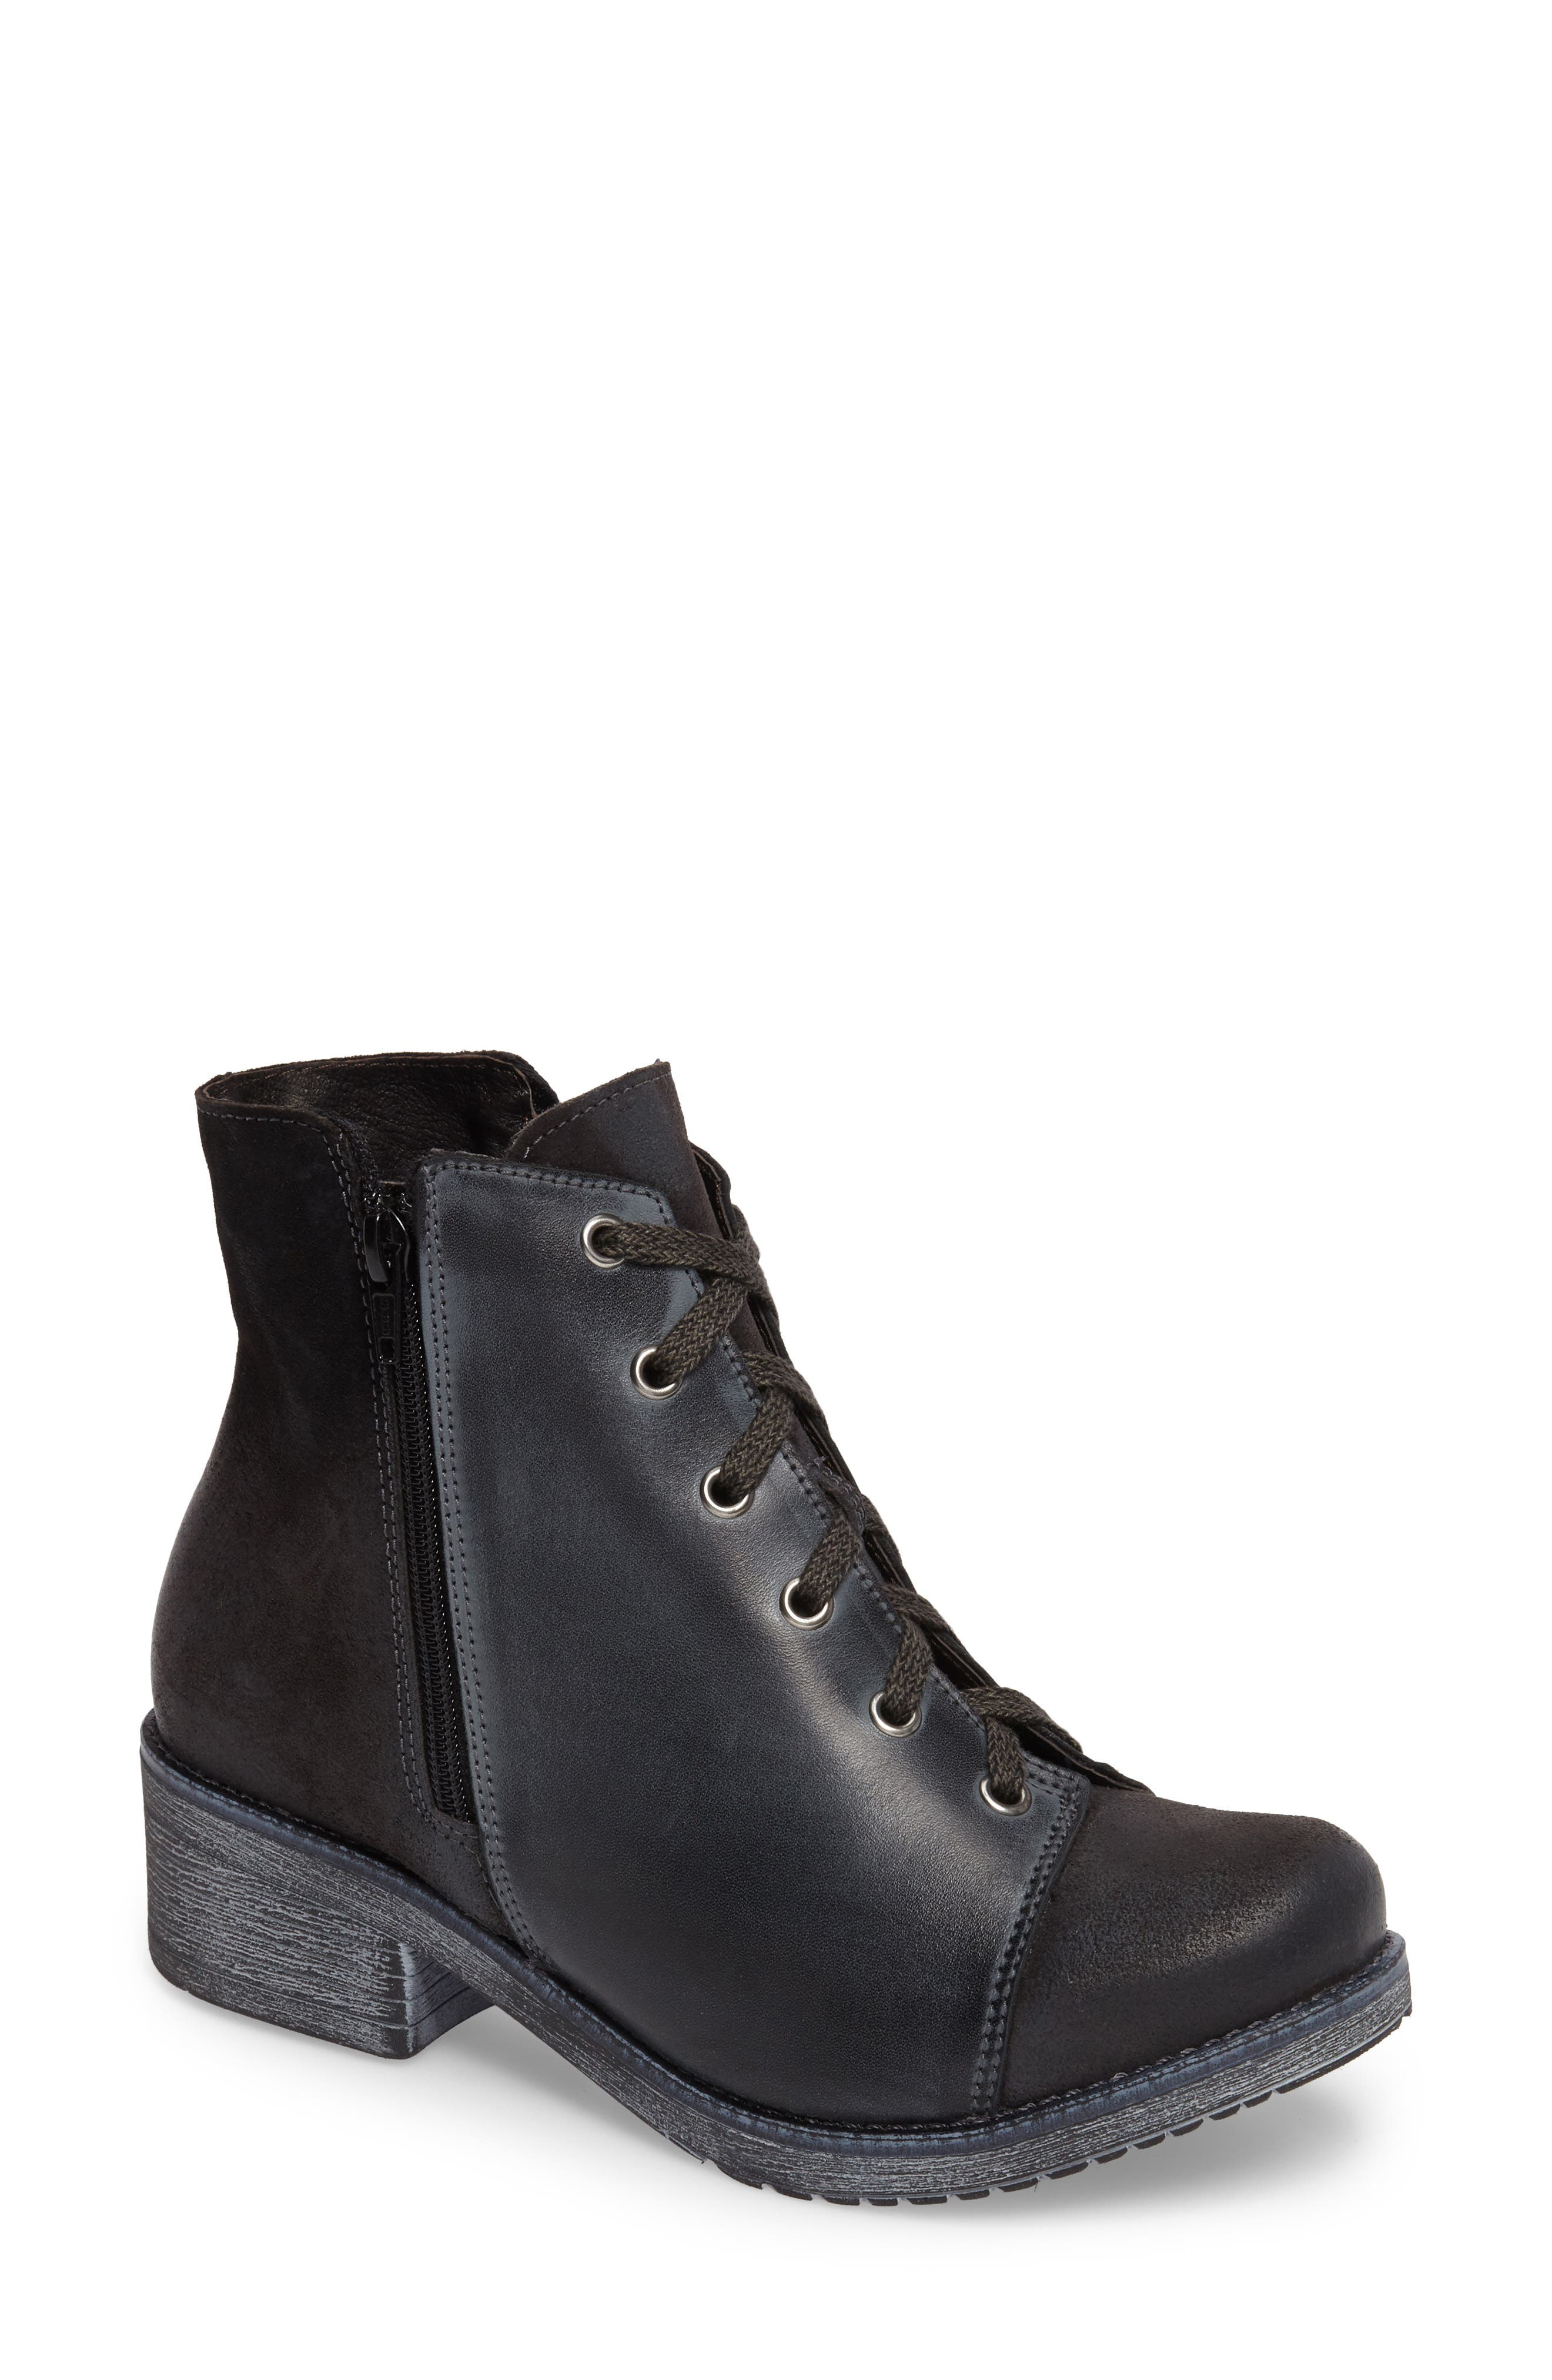 Main Image - Naot Groovy Lace Up Bootie (Women)